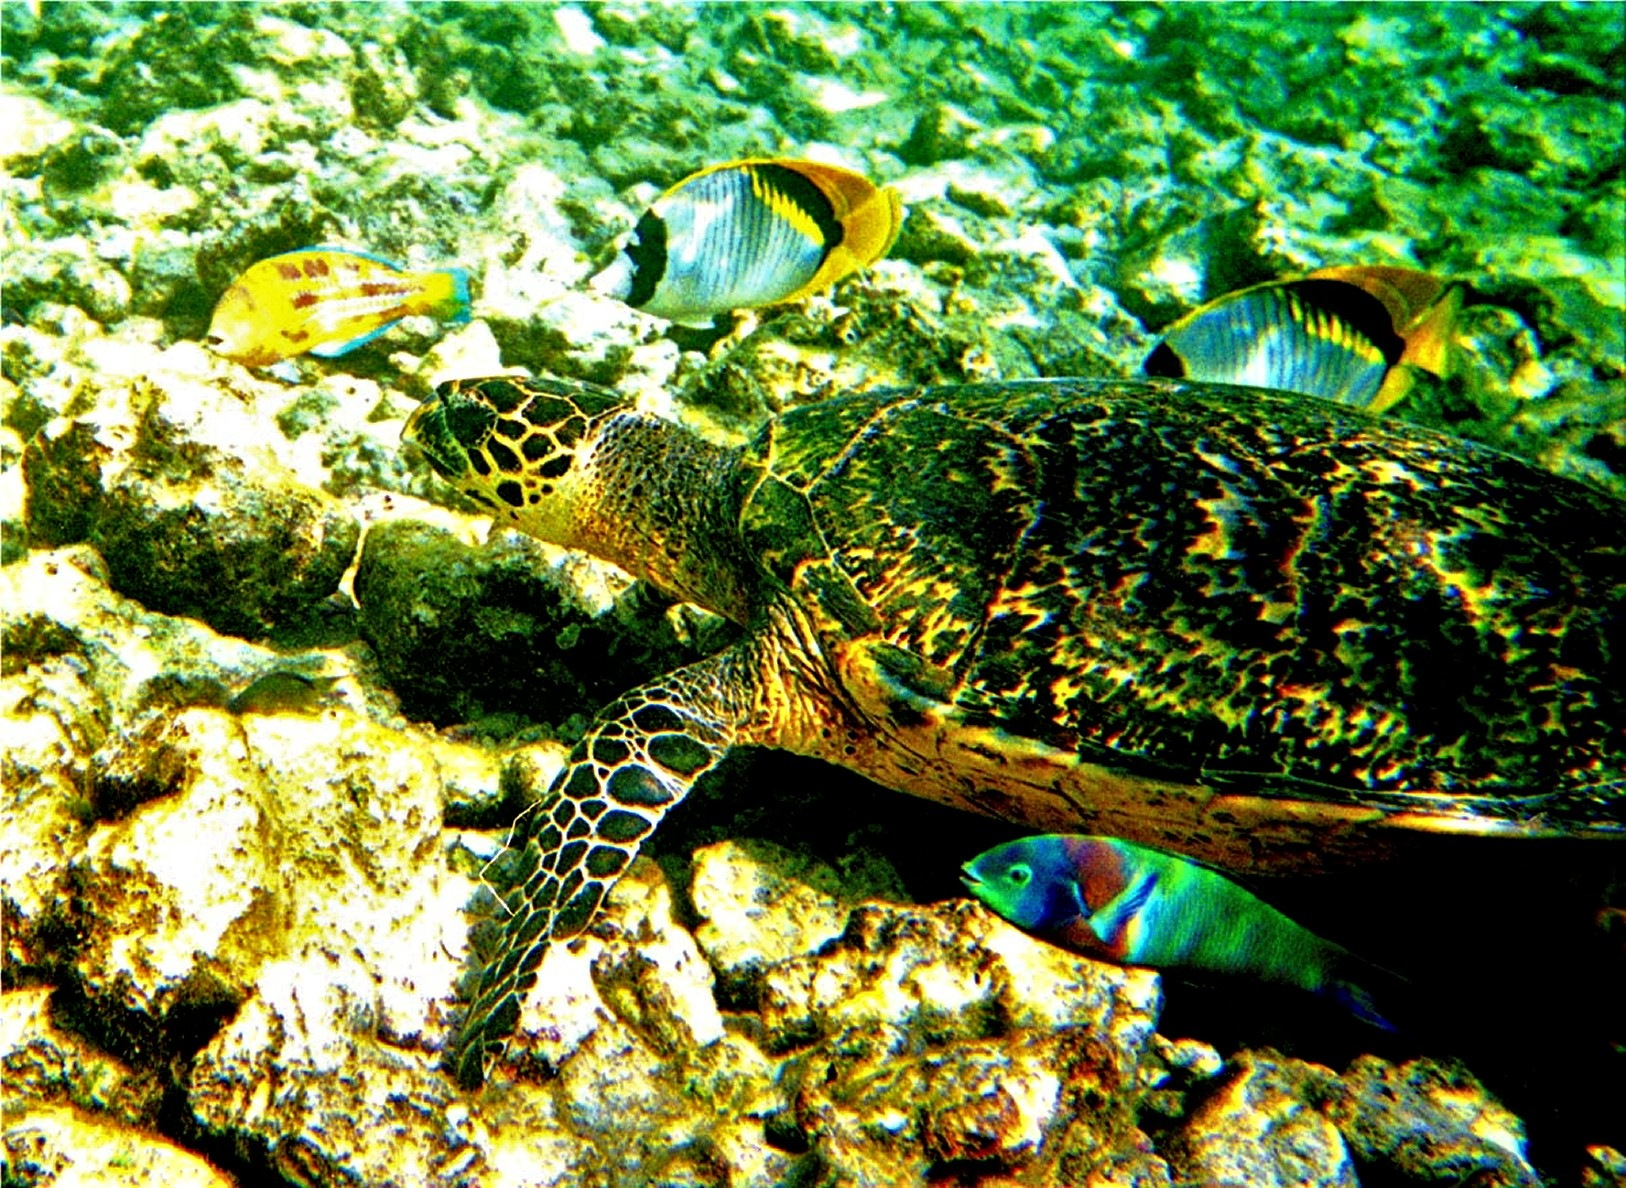 Hawk bill turtle, X-mas wrasse and parrot wrasse by Miloliidrifter